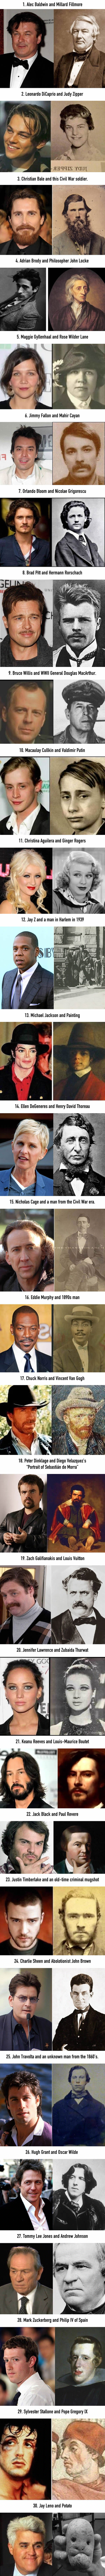 30 Celebrities and Their Historical Doppelgangers